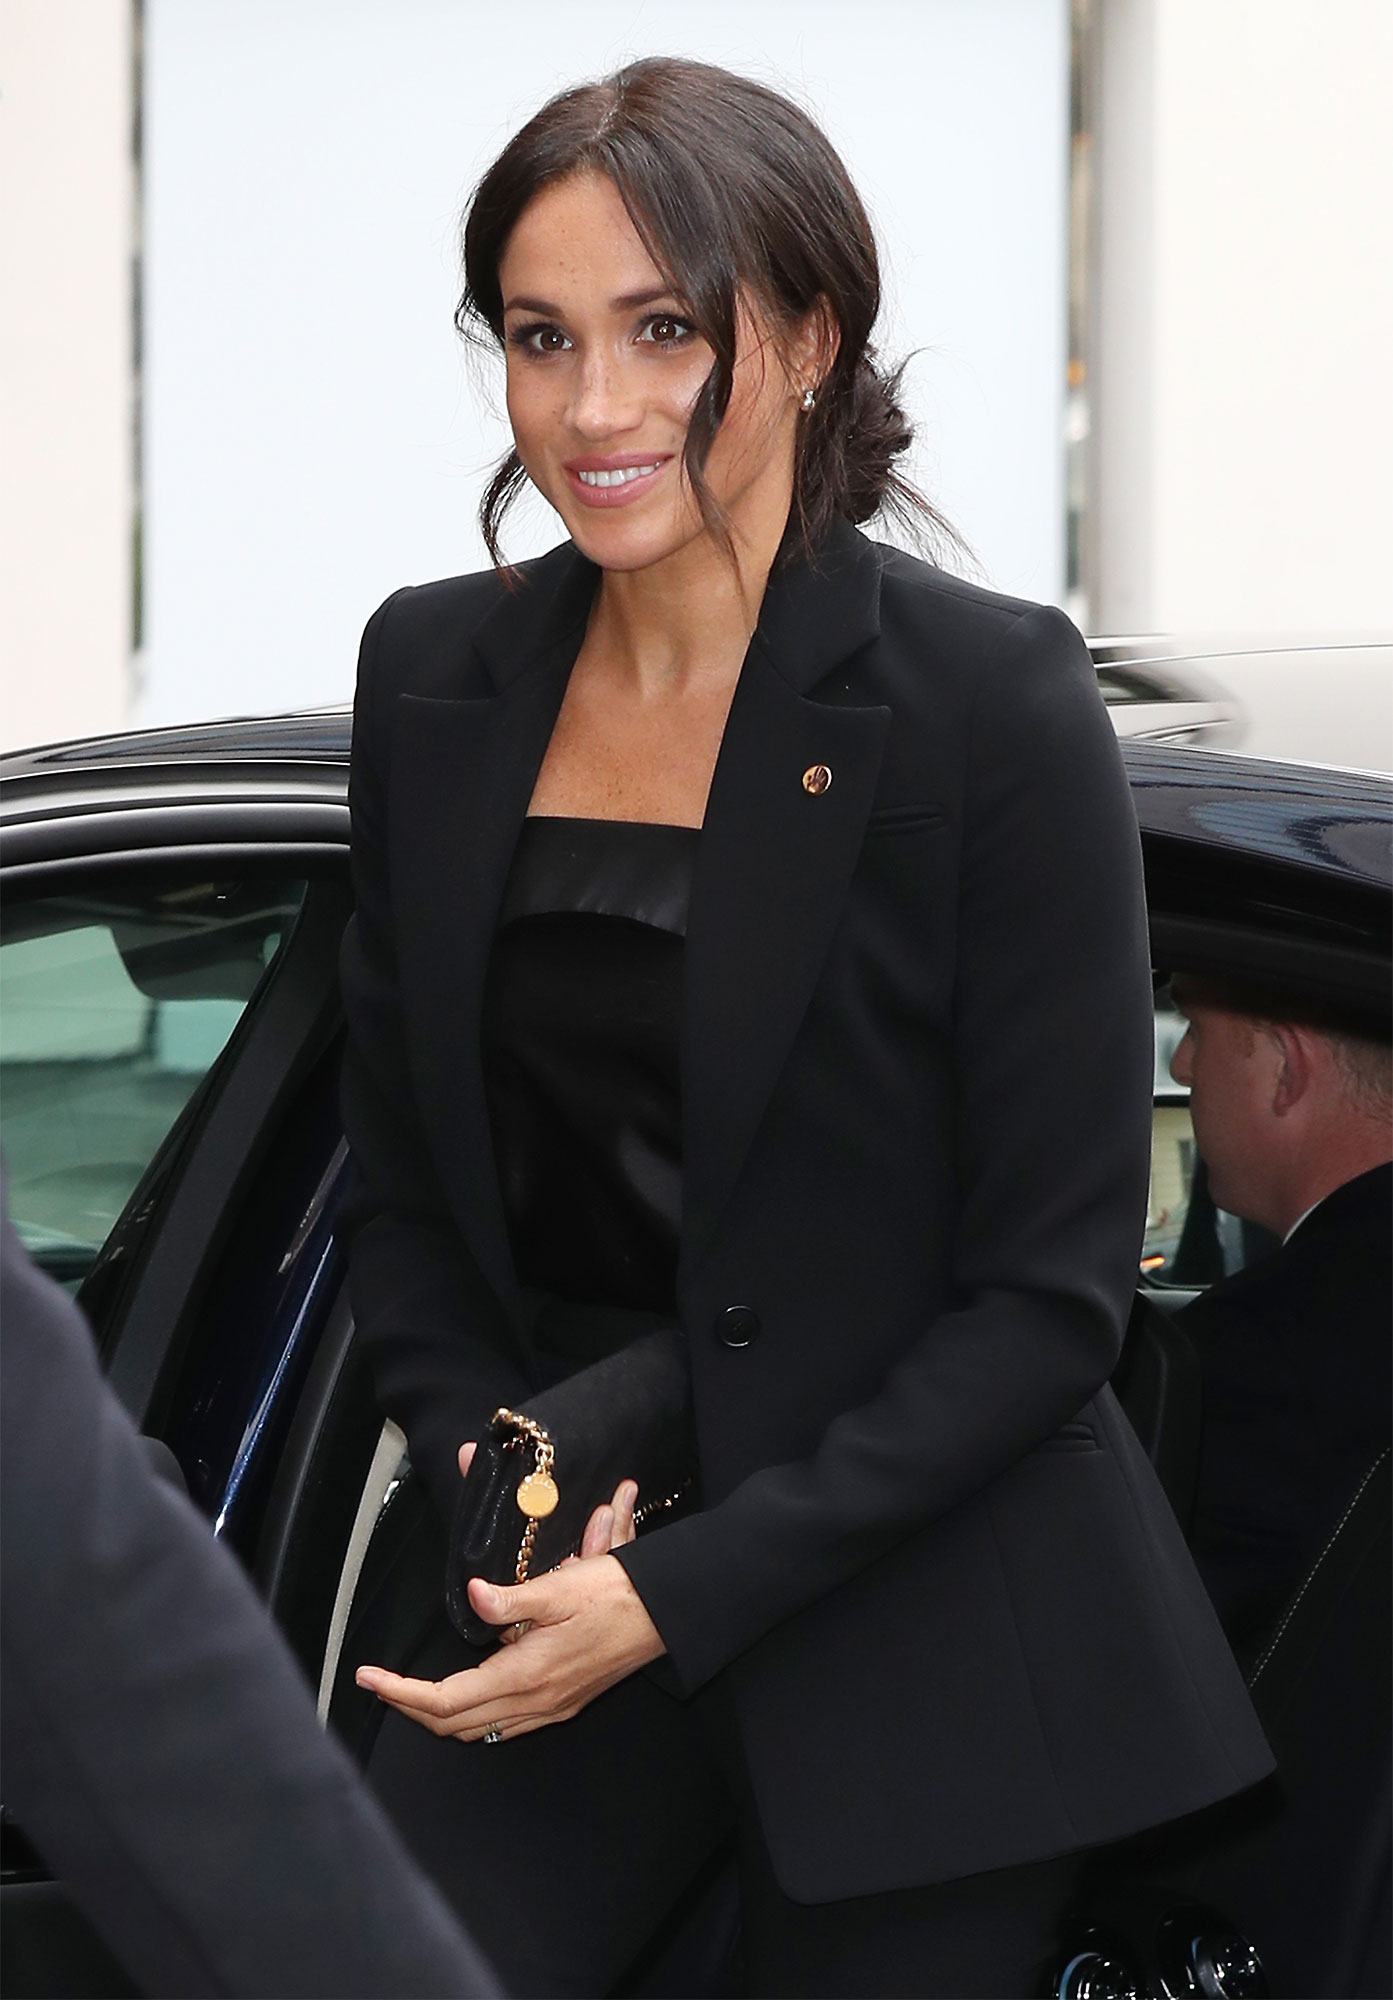 MEGHAN'S CAREFUL PURSE PLACEMENT